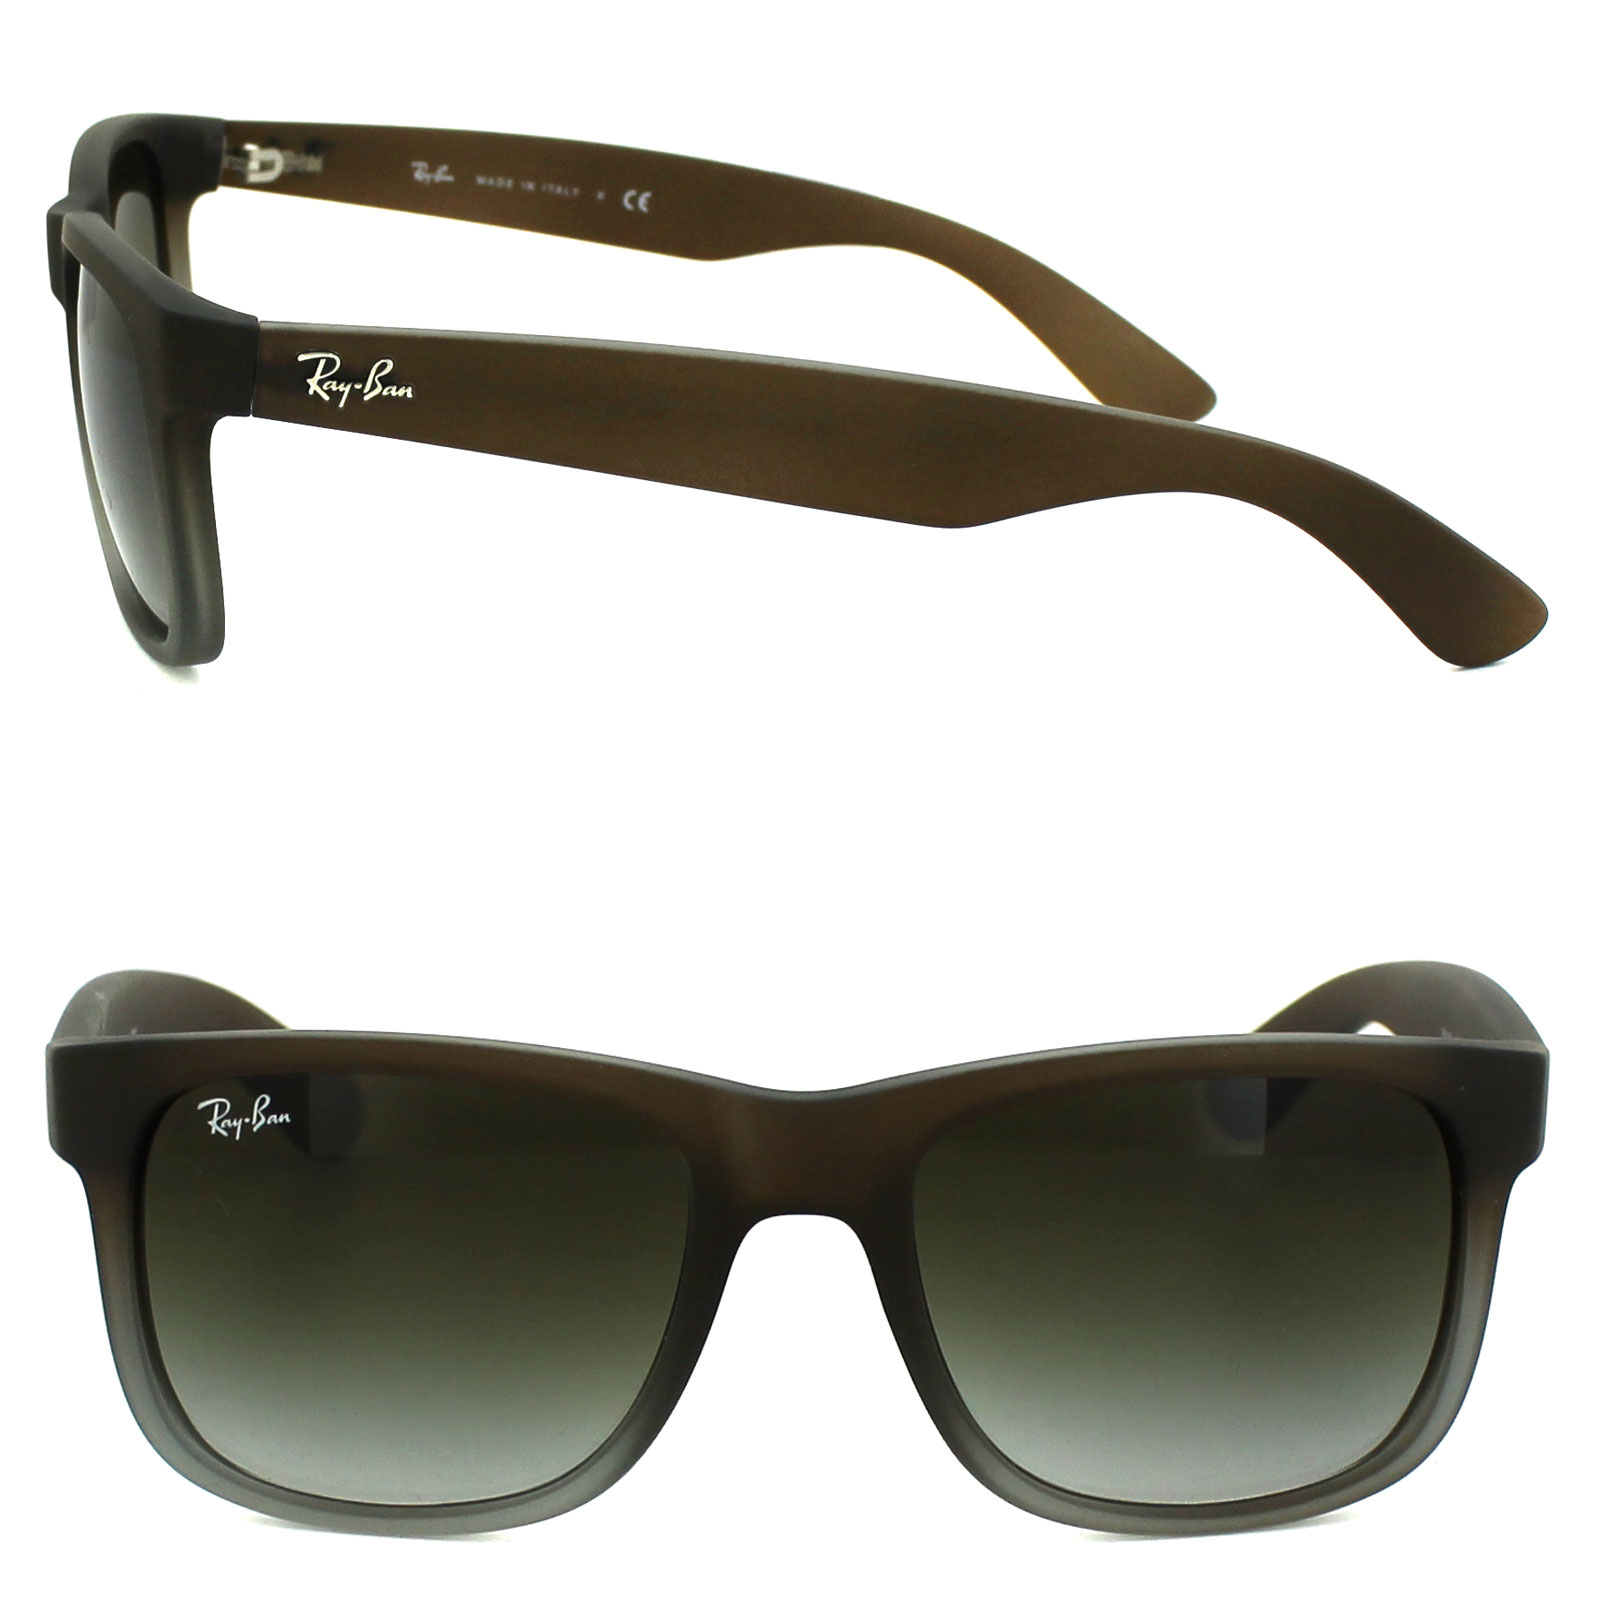 cc55f2955d Sentinel Ray-Ban Sunglasses Justin 4165 854 7Z Rubber Brown Fade Green  Gradient Small